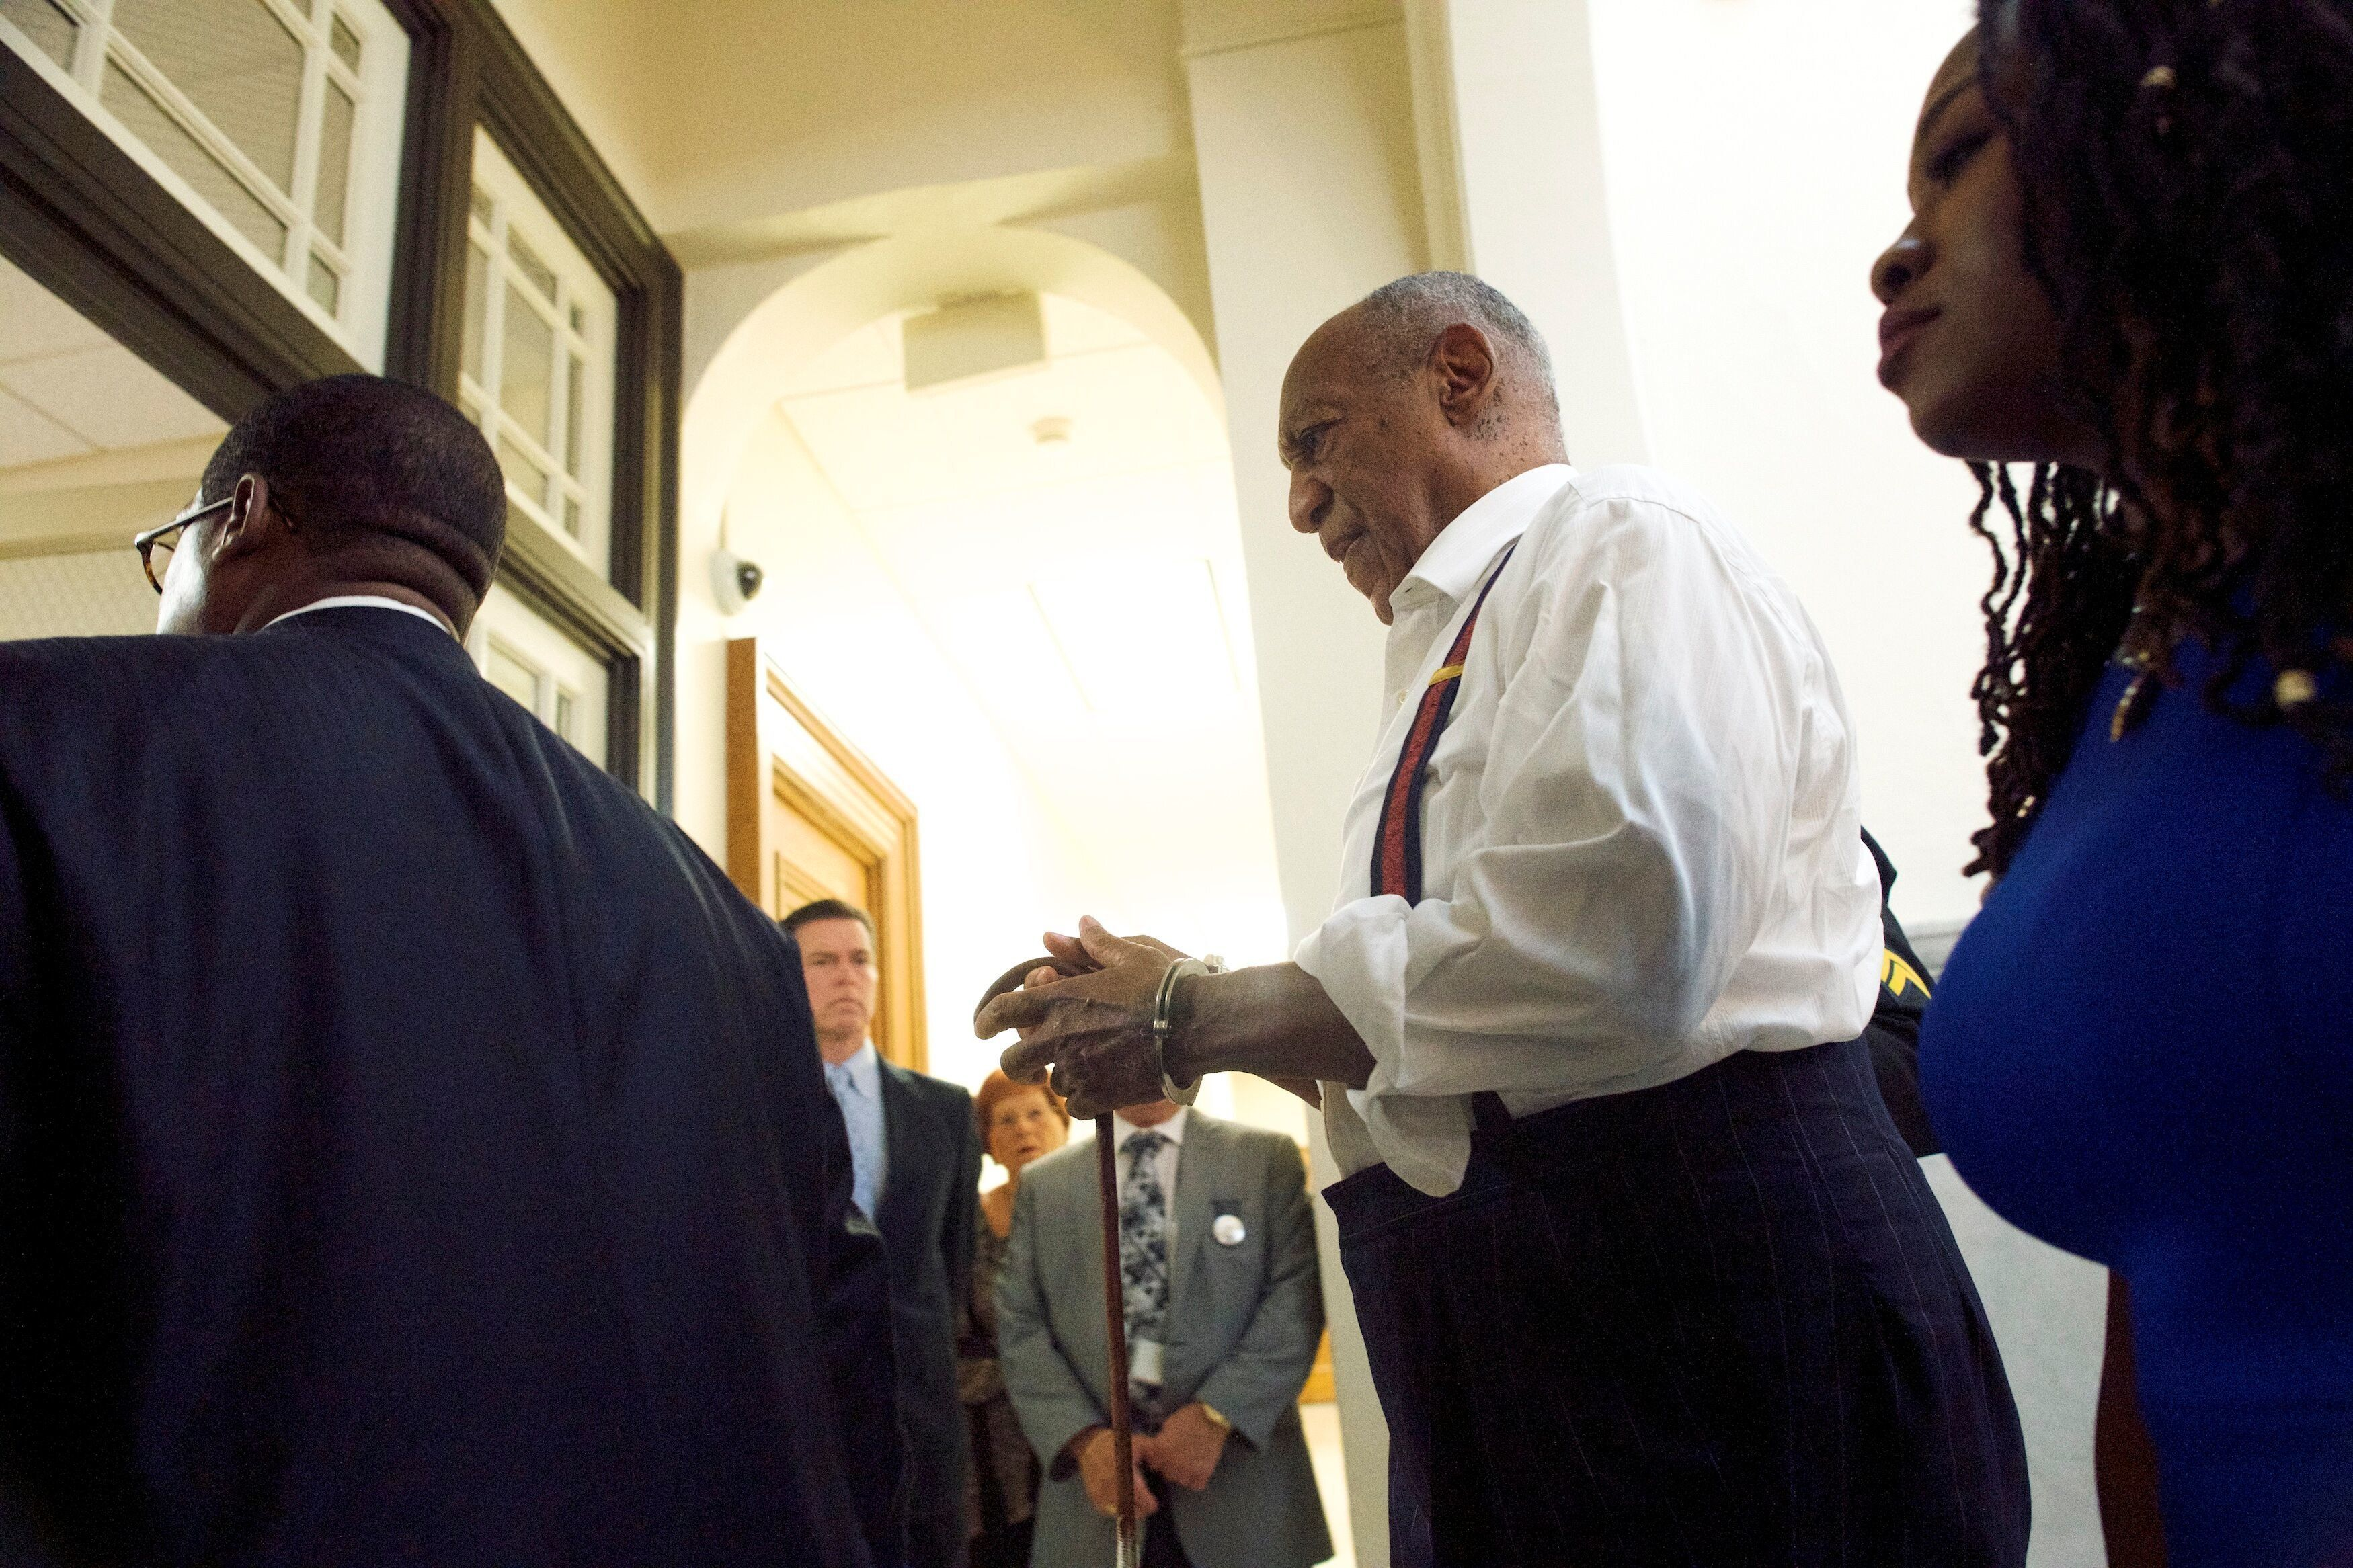 Cosby being taken into custody in handcuffs on Tuesday